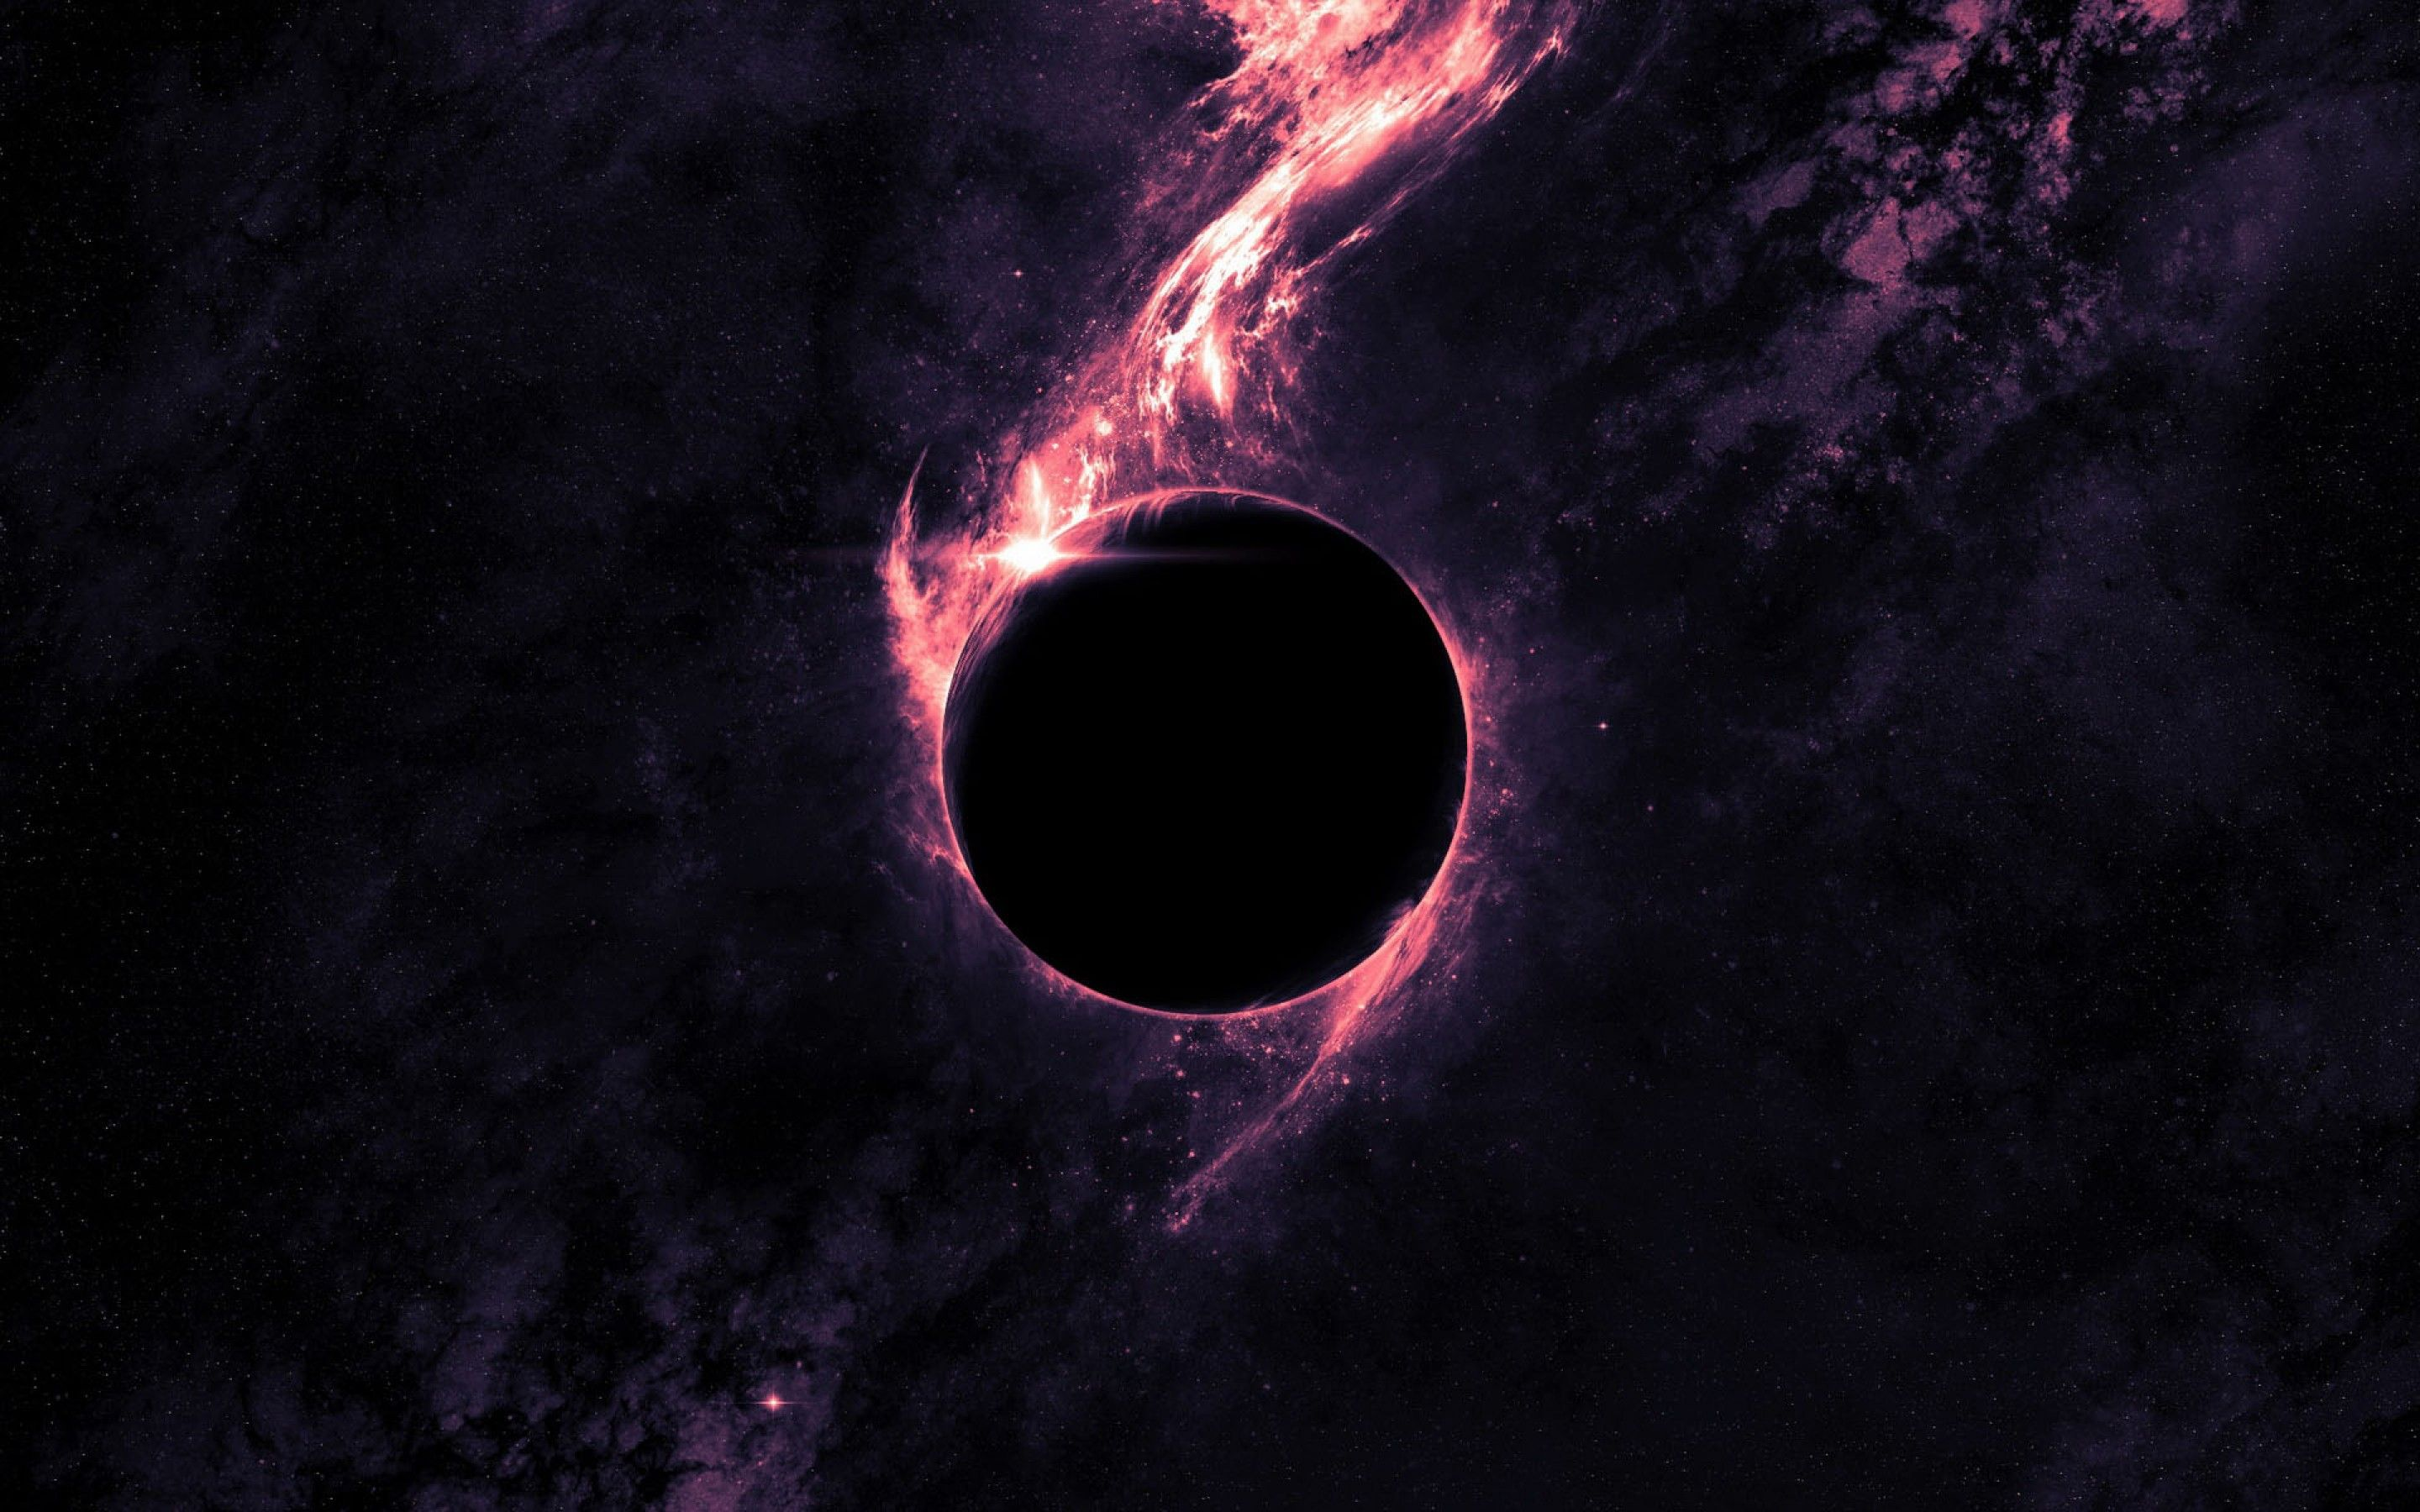 2880x1800 - Black Hole Wallpapers 1